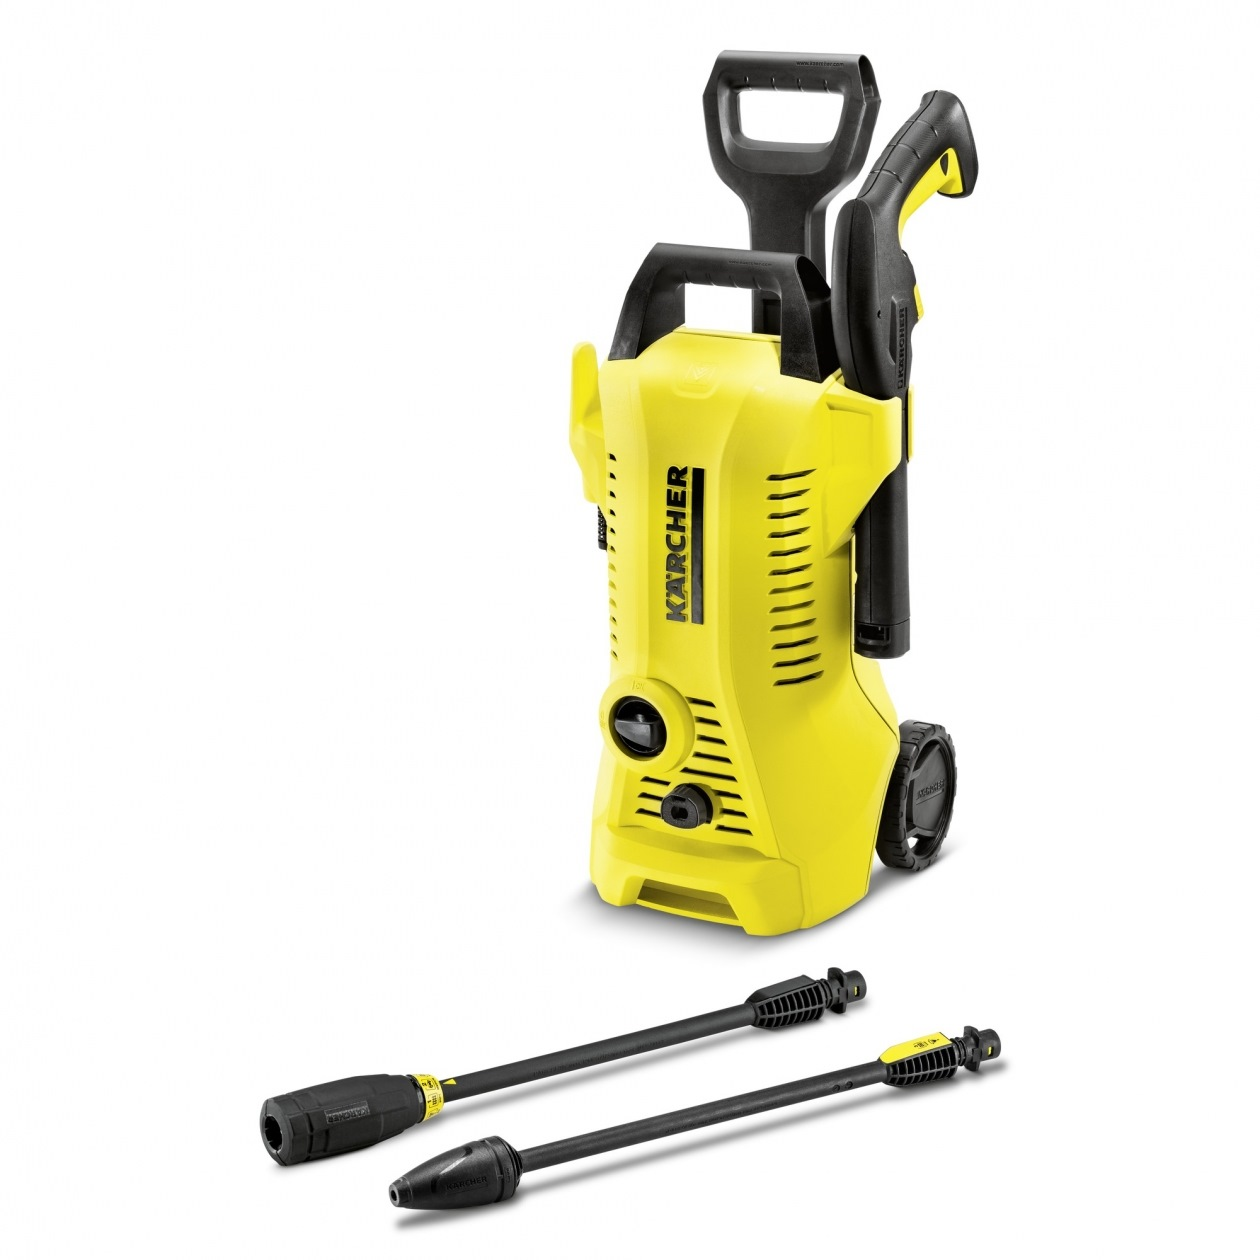 karcher 120 bar high pressure cleaner k2 full control pressure washers horme singapore. Black Bedroom Furniture Sets. Home Design Ideas